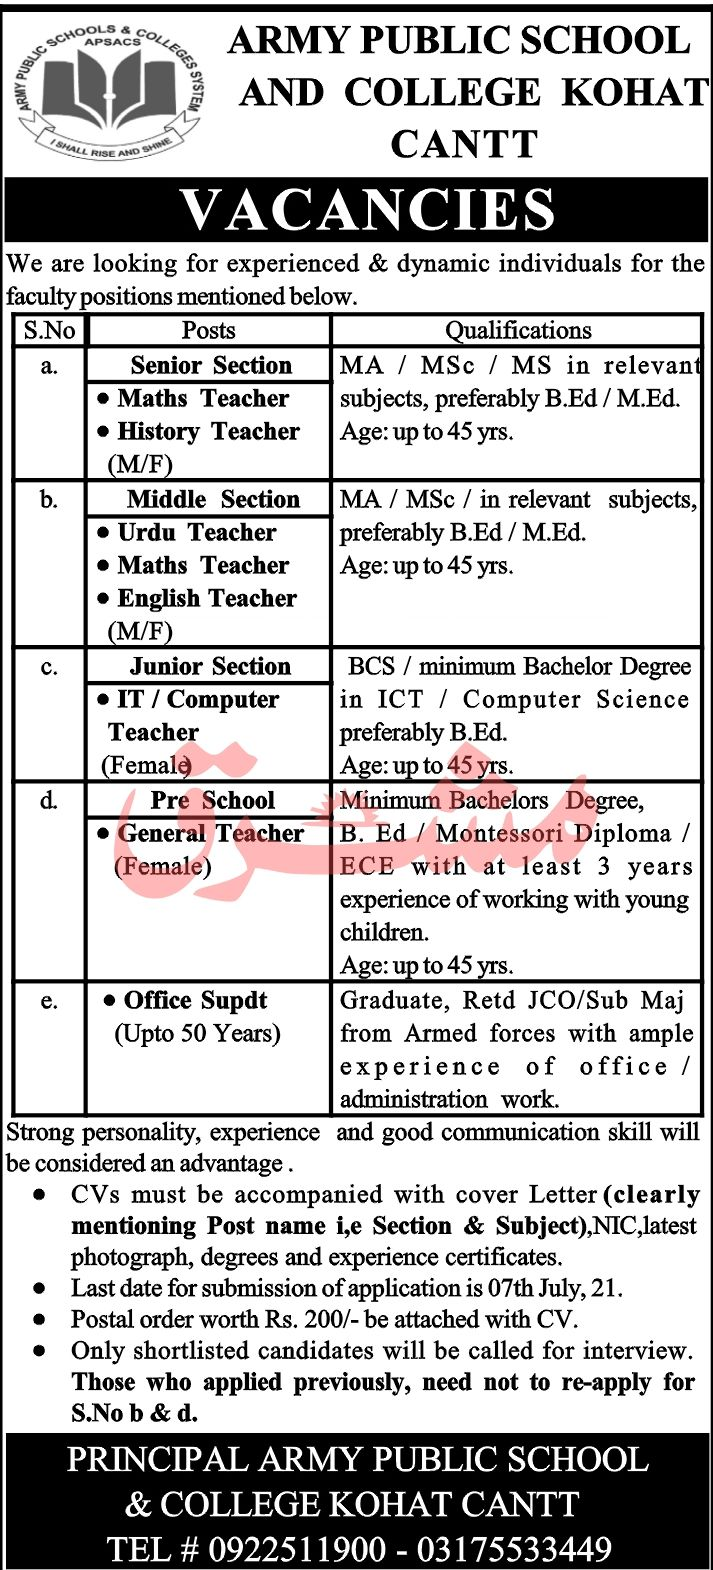 Army Public School and College Kohat Cantt Vacancies 2021 3